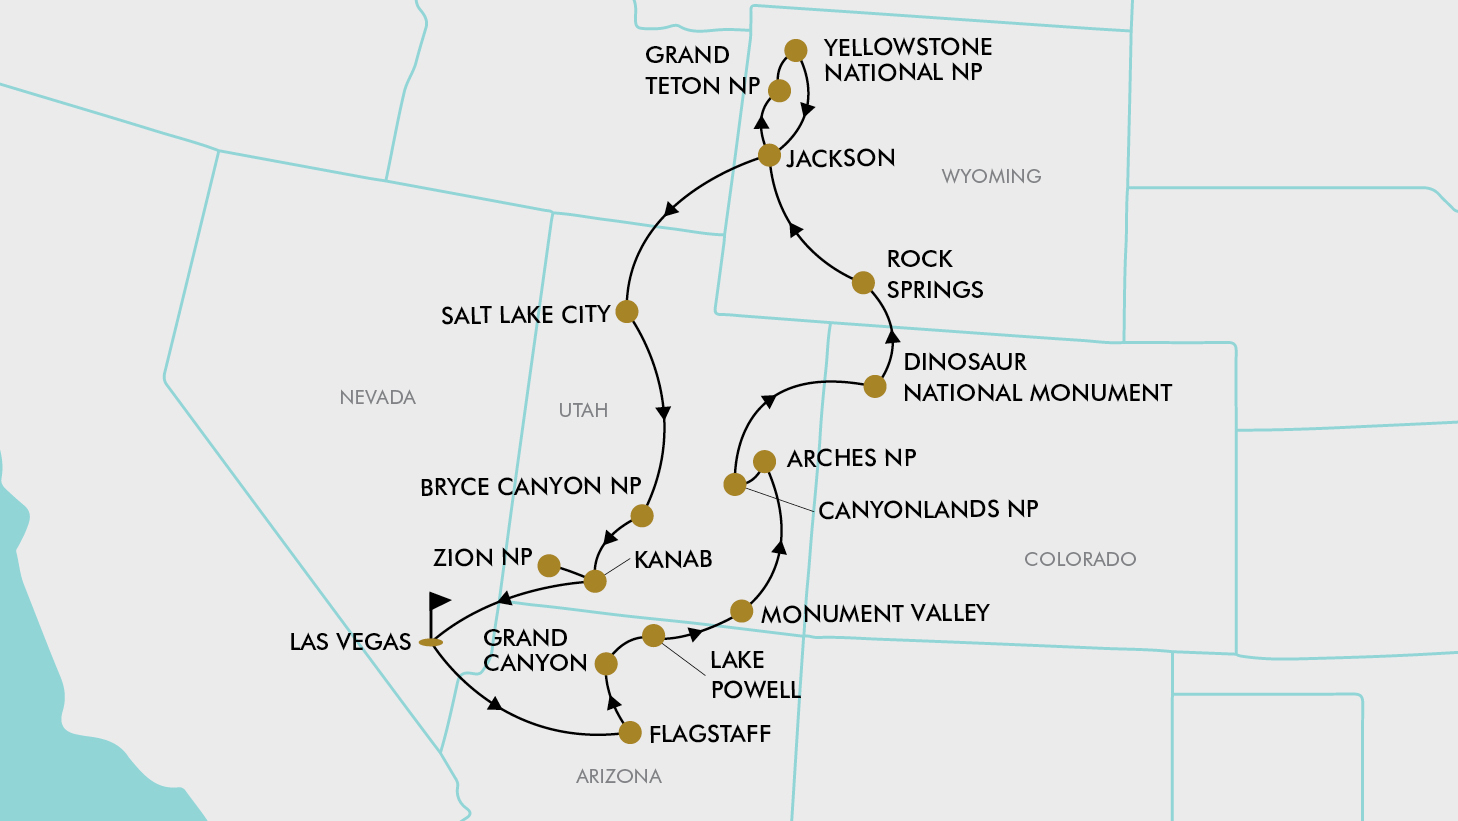 16 Day United States National Parks | TripADeal